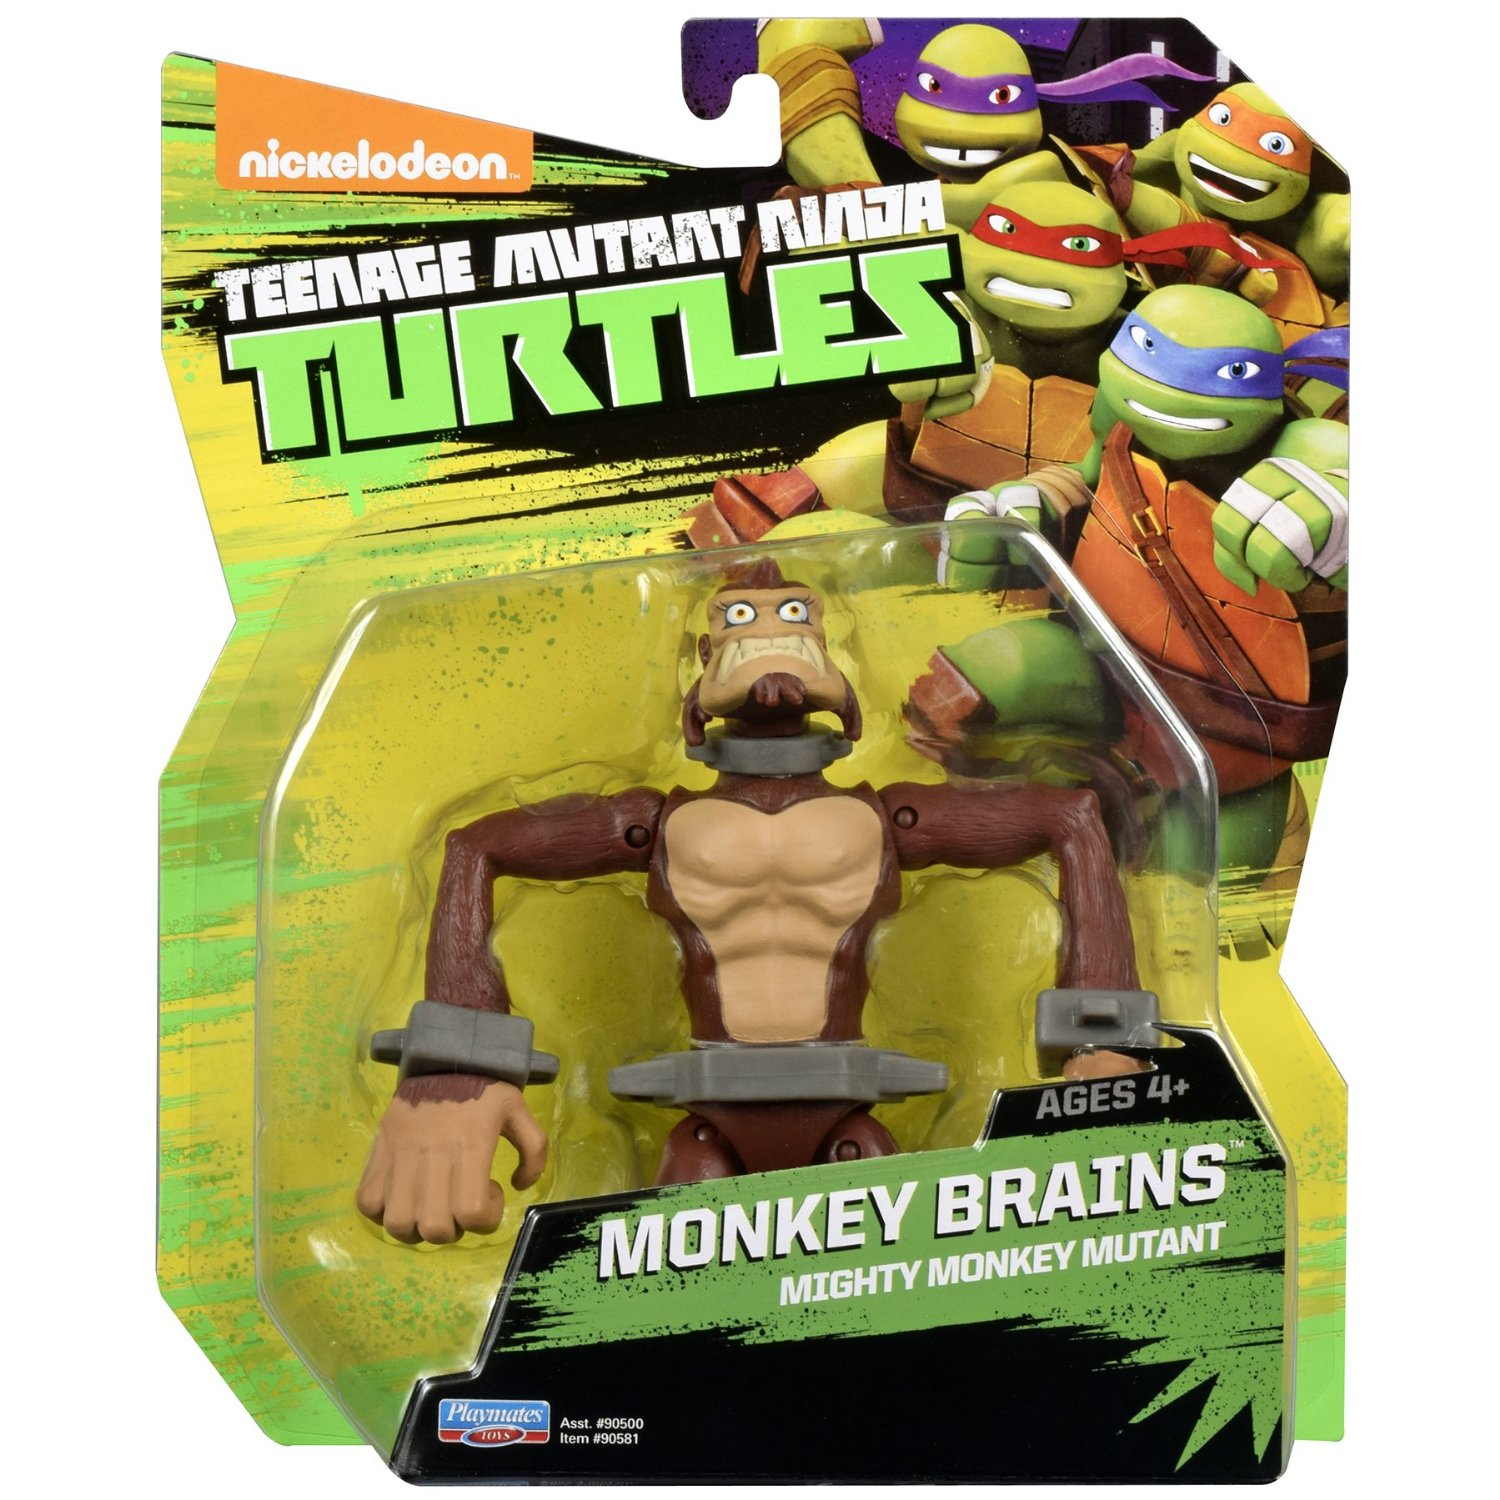 Nickelodeon Teenage Mutant Ninja Turtles Monkey Brains Figure